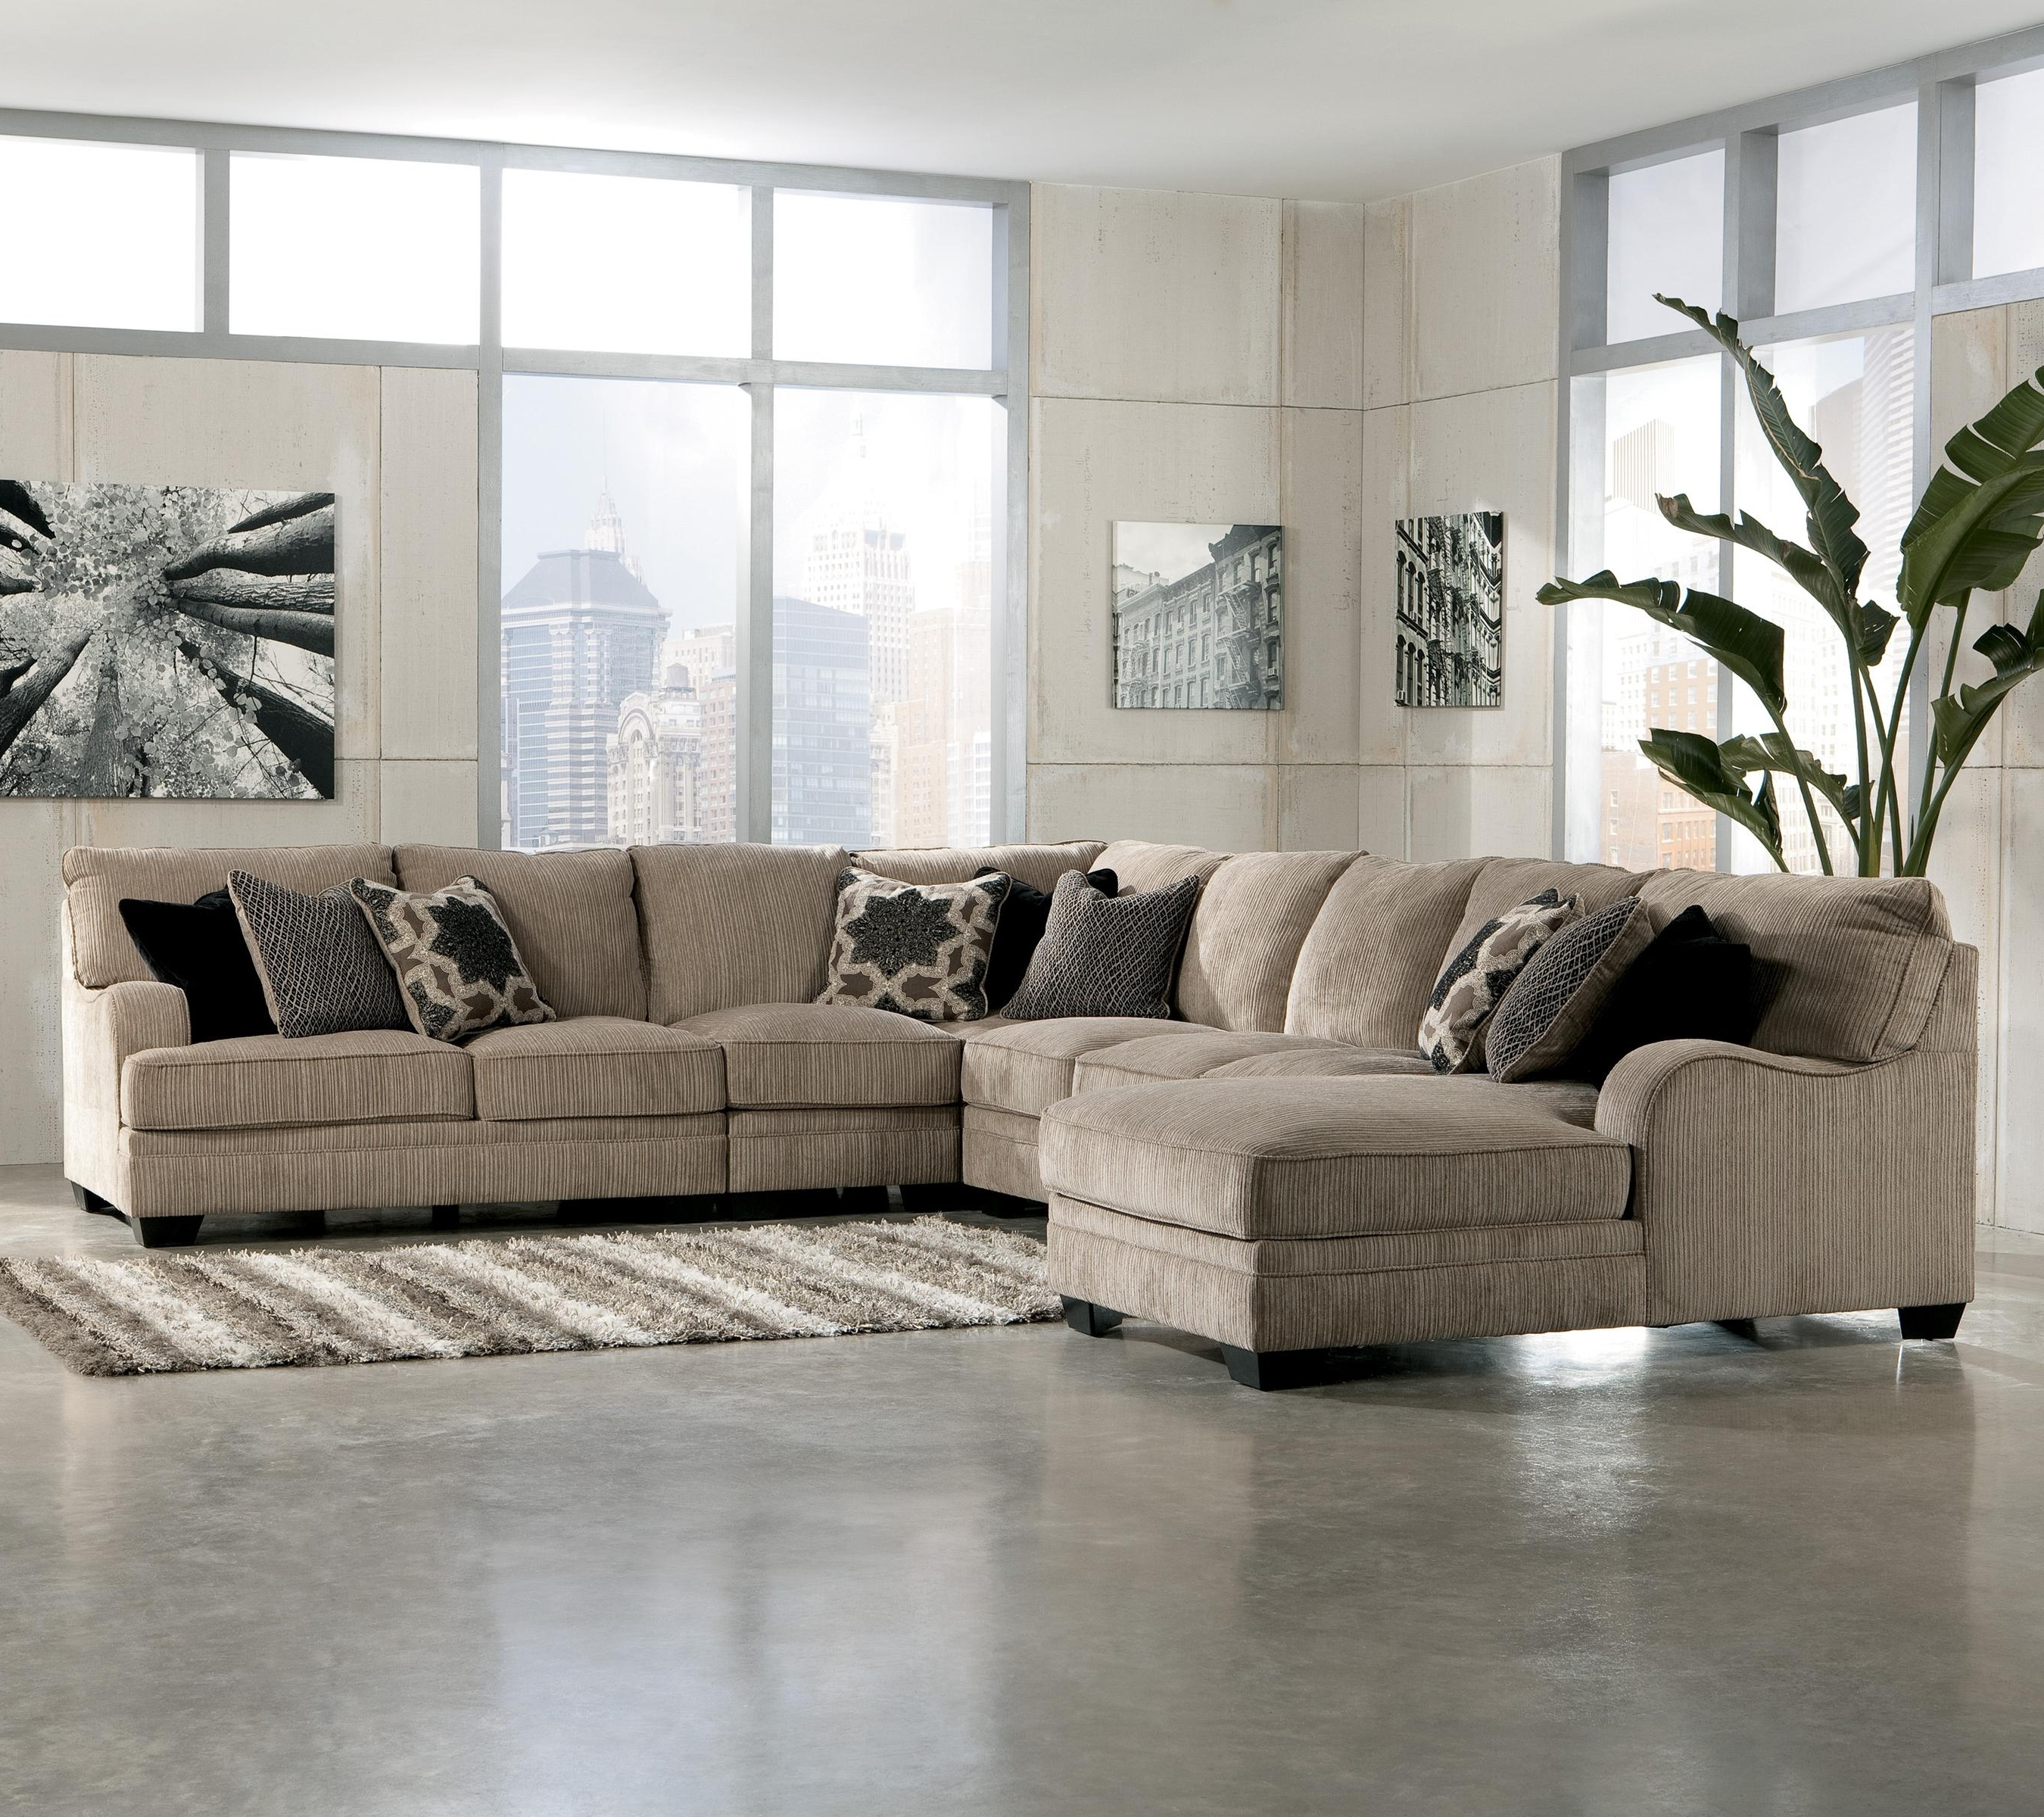 Trendy Living Room Sectional: Katisha 4 Piece Sectionalashley Inside Left Chaise Sectionals (View 10 of 15)